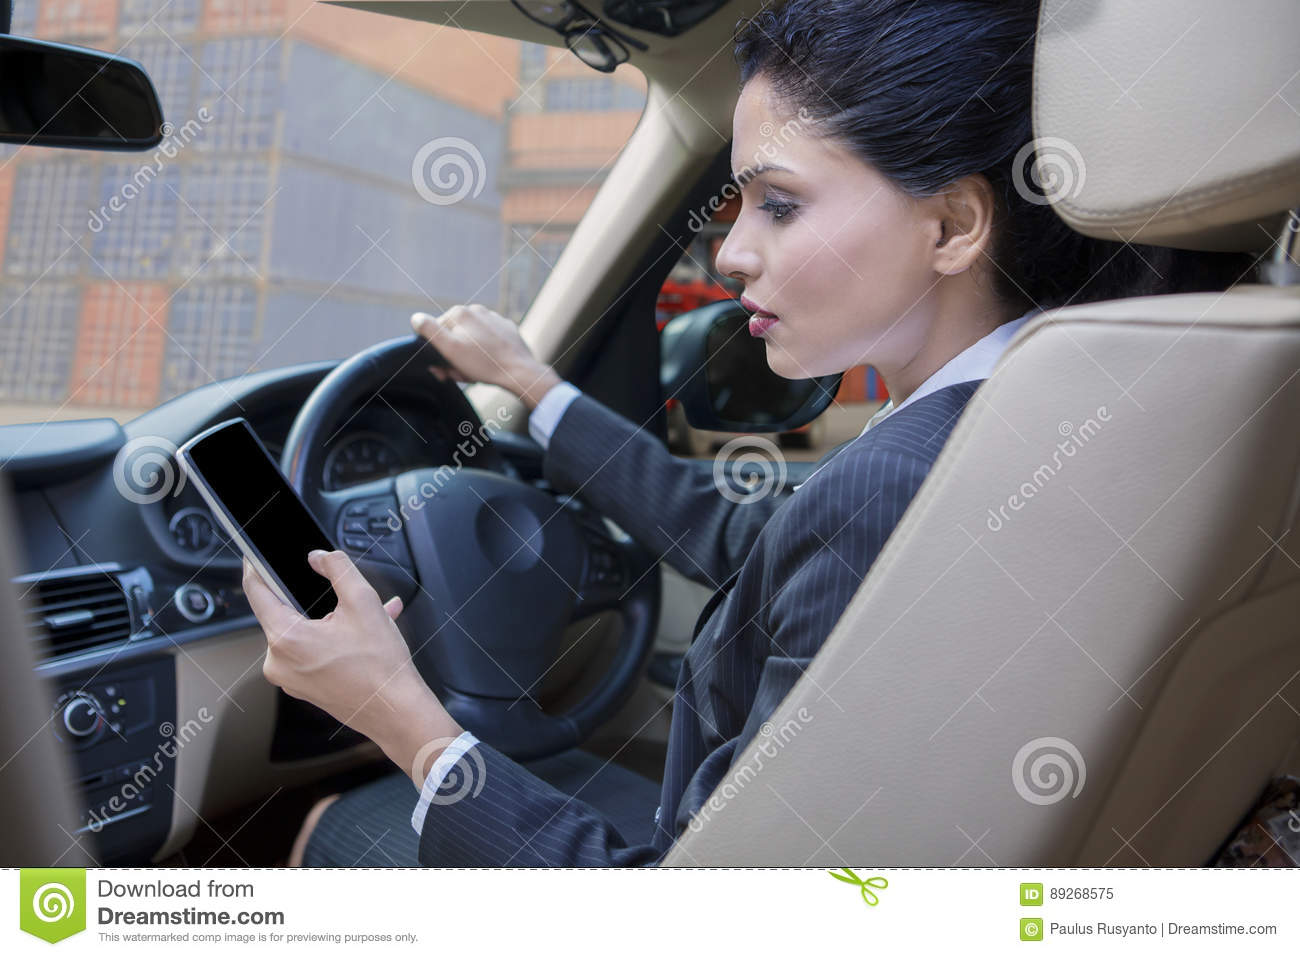 using cell phones while driving Generally, we use our cell phones in the cars, while we are running errands or conduction business from one place to another place which has lead to numerous accidents on the american highways, so the nation has begun to question should cell phones be used while driving.